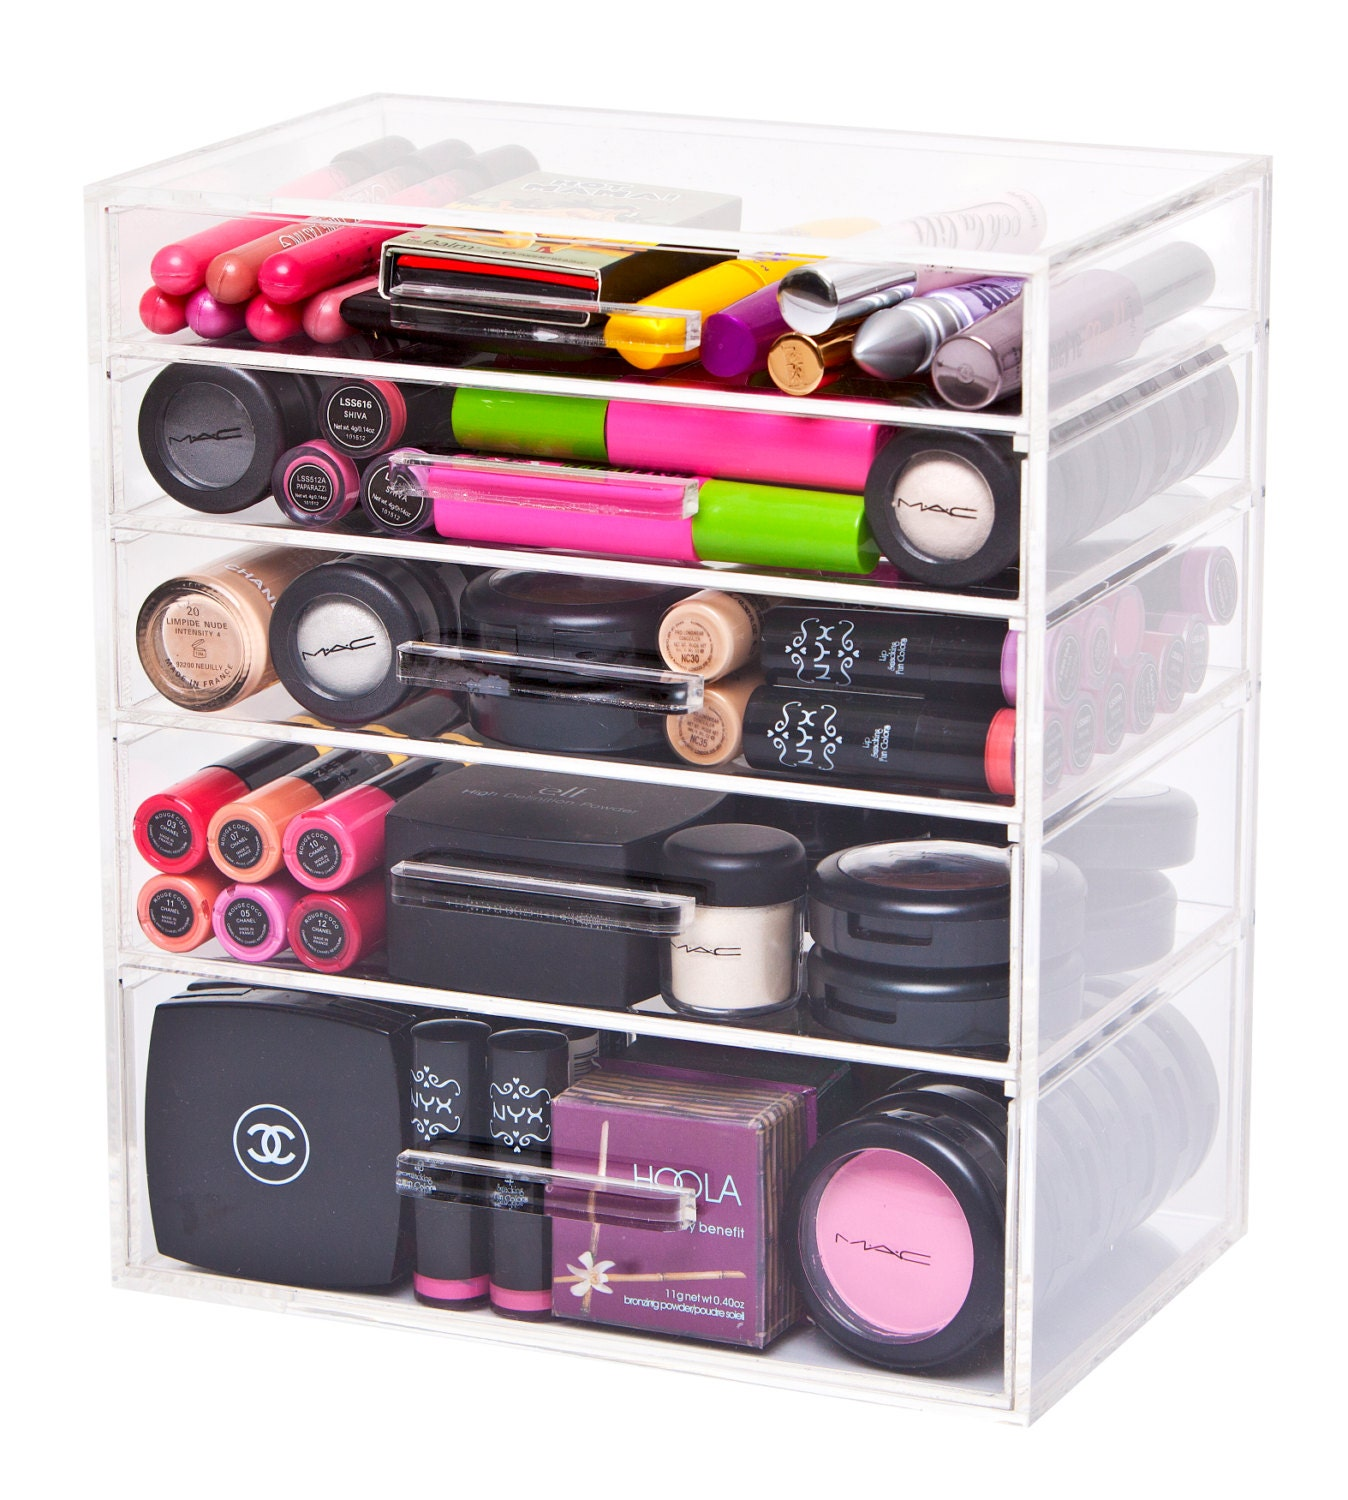 Kate Acrylic Makeup Organizer 5 Drawer Storage Modular Makeup